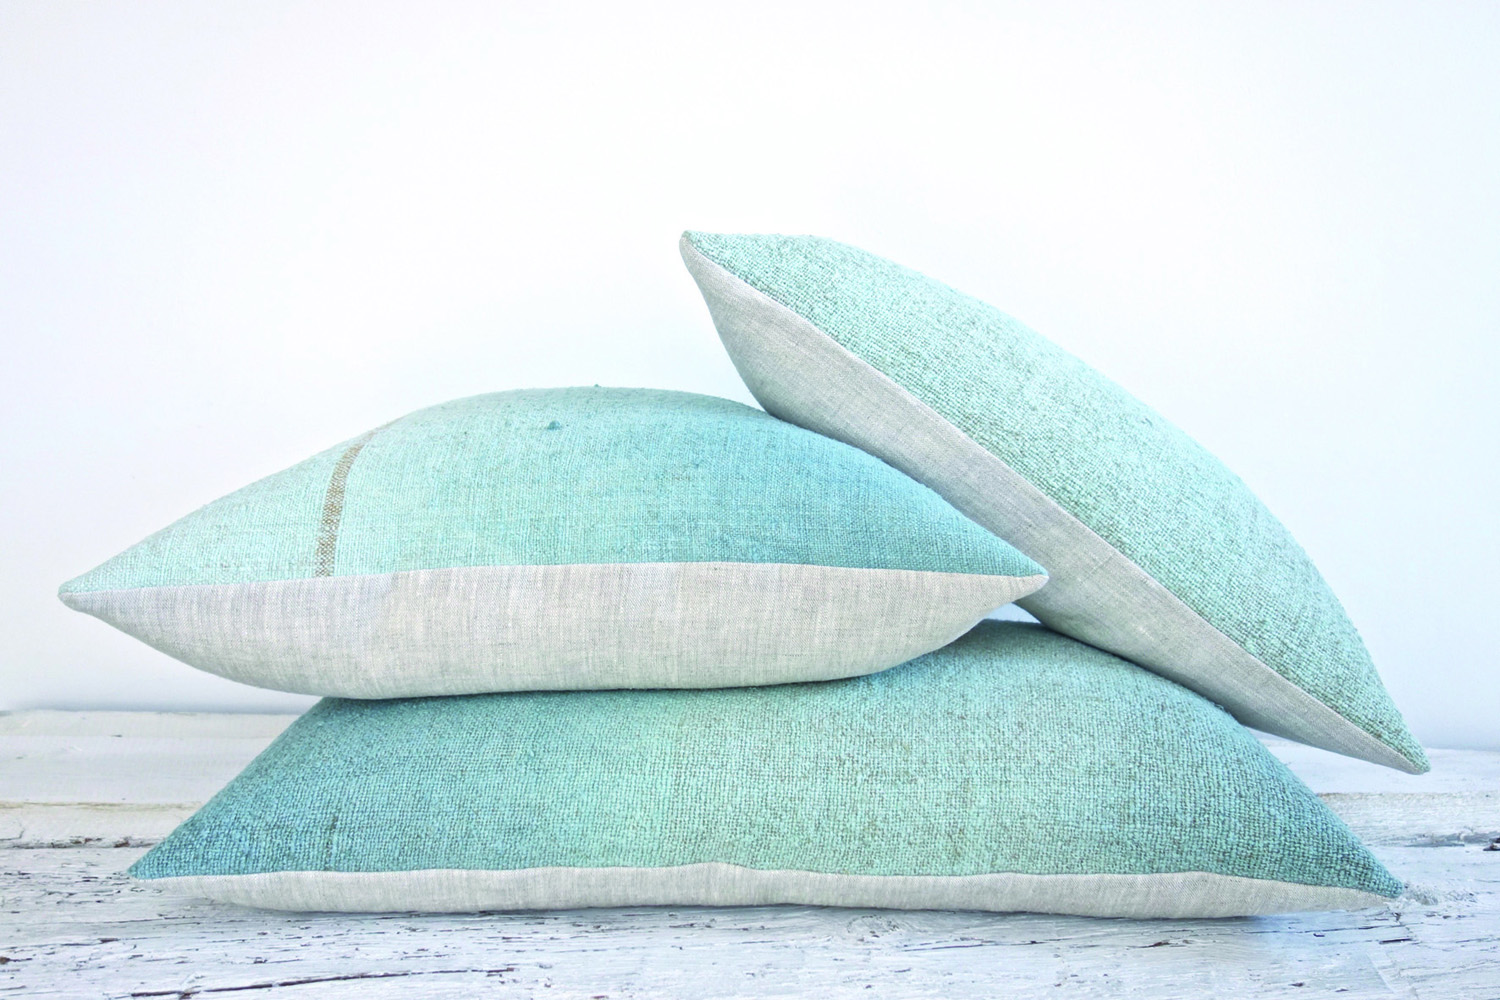 espanyolet_vintage_linen_Blue_pillows_cushions_copy.jpg